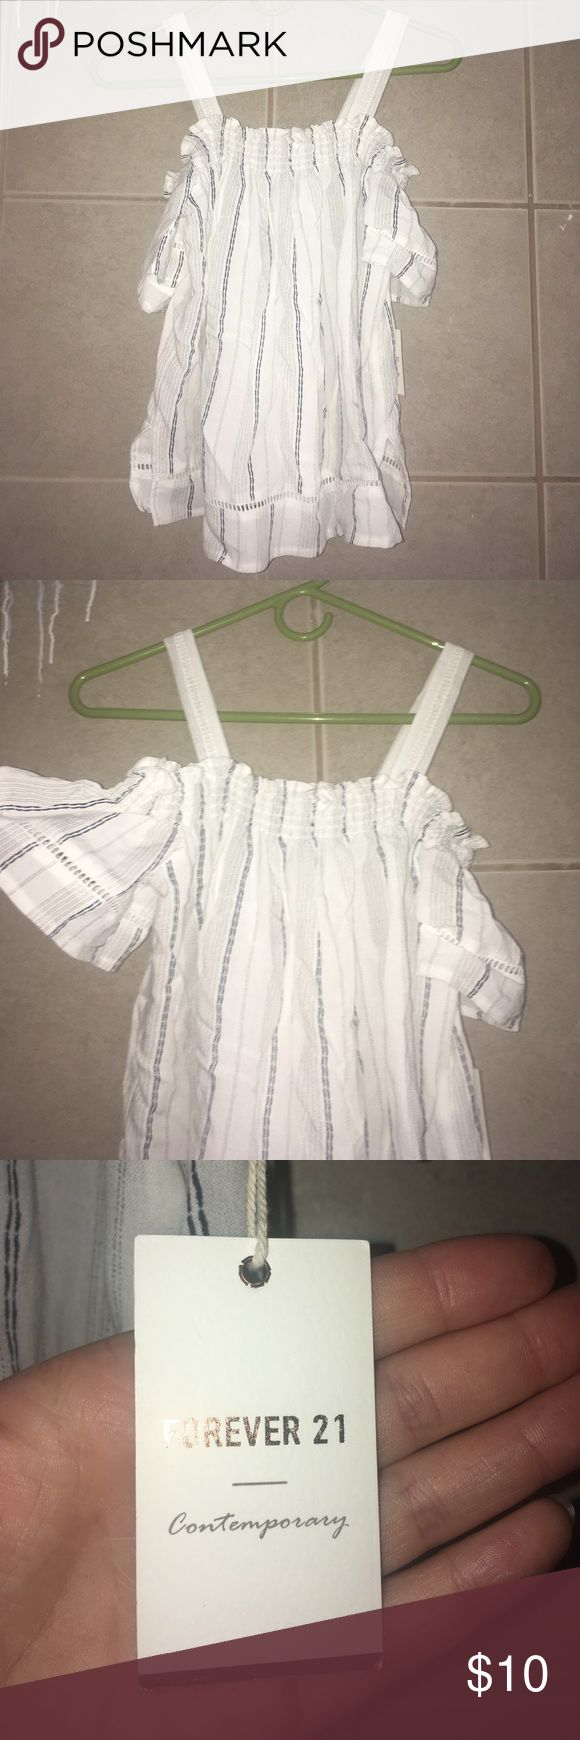 White flowing blouse Off the shoulder top with straps to hold it up as well. White with blue strips. Bought it and ended up not liking the way it looked on myself. BRAND NEW, never worn Forever 21 Tops Blouses